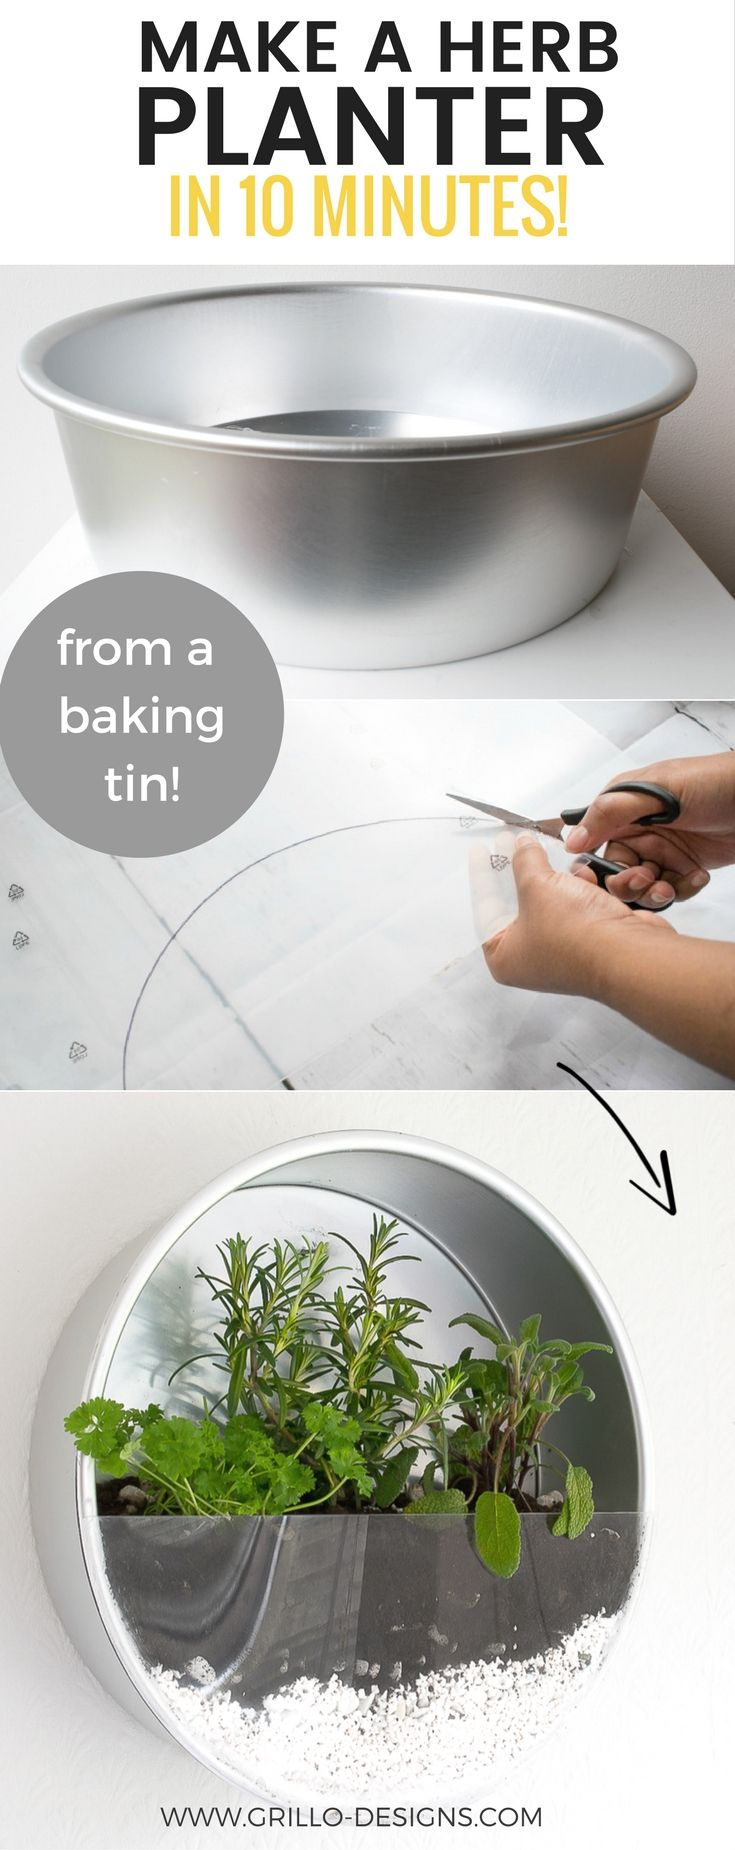 Make a herb planter in 10 minutes